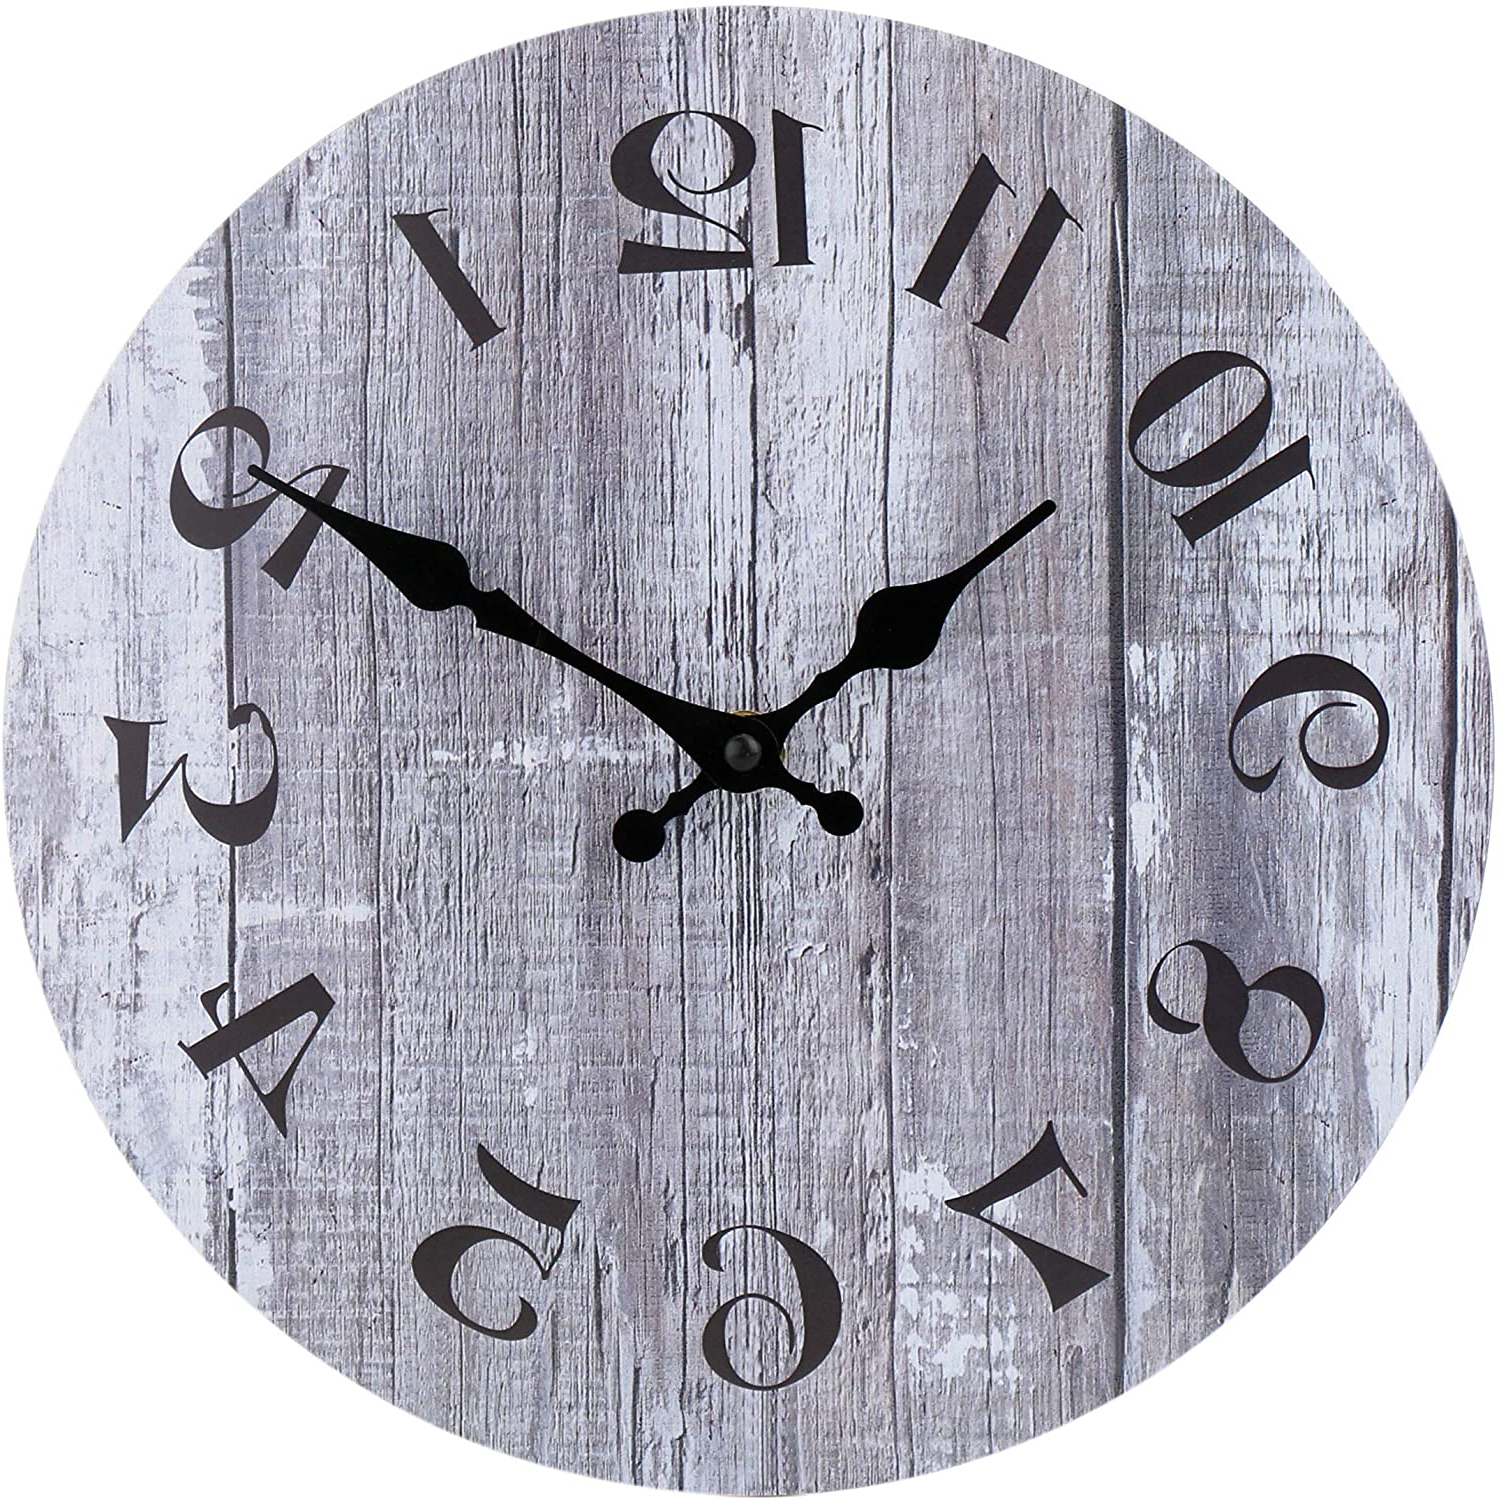 Blended Fabric Old Rugged Cross Wall Hangings Regarding Most Recently Released Silent Non Ticking Wooden Decorative Round Wall Clock Quality Quartz Battery Operated Wall Clocks Vintage Rustic Country Tuscan Style Gray Wooden Home (View 18 of 20)